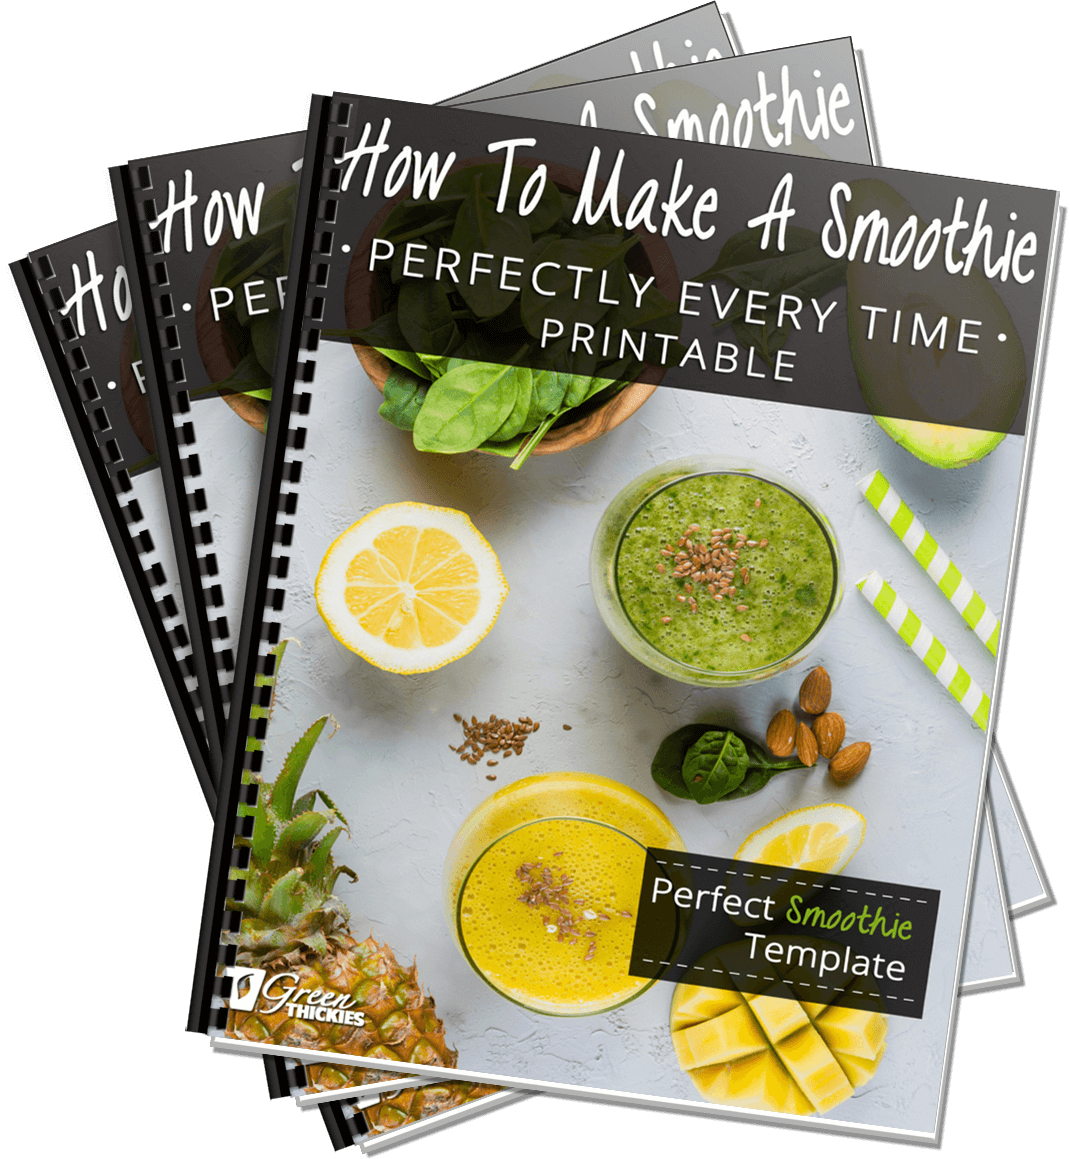 How to make a smoothie perfectly every time Printable